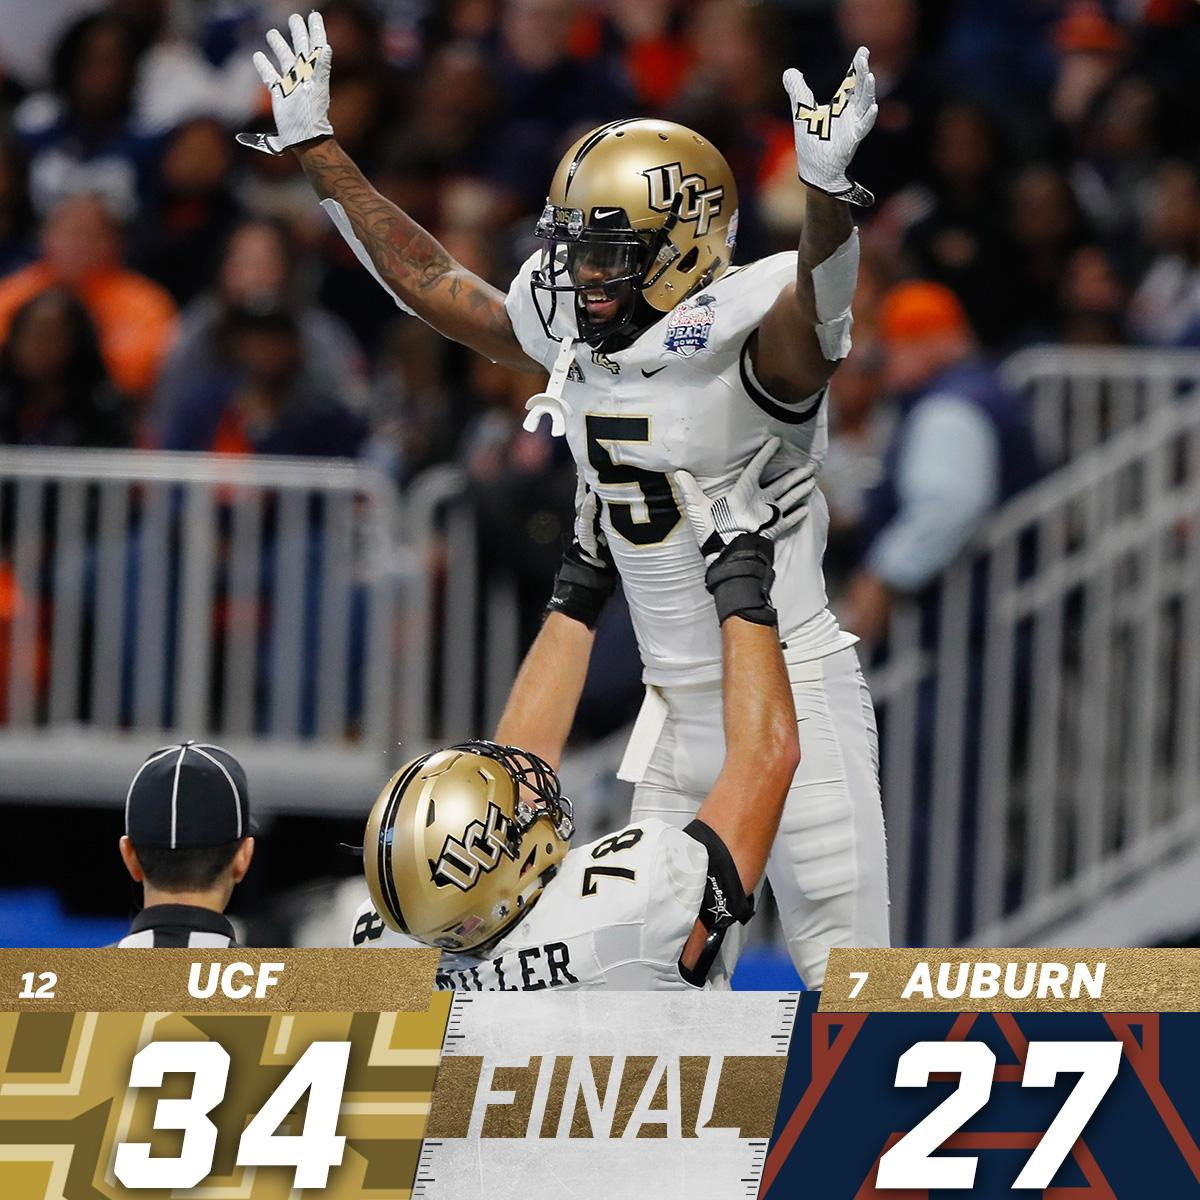 Perfection!  UCF completes a 13-0 season in Scott Frost's finale, taking down Auburn in the Chick-fil-A Peach Bowl.